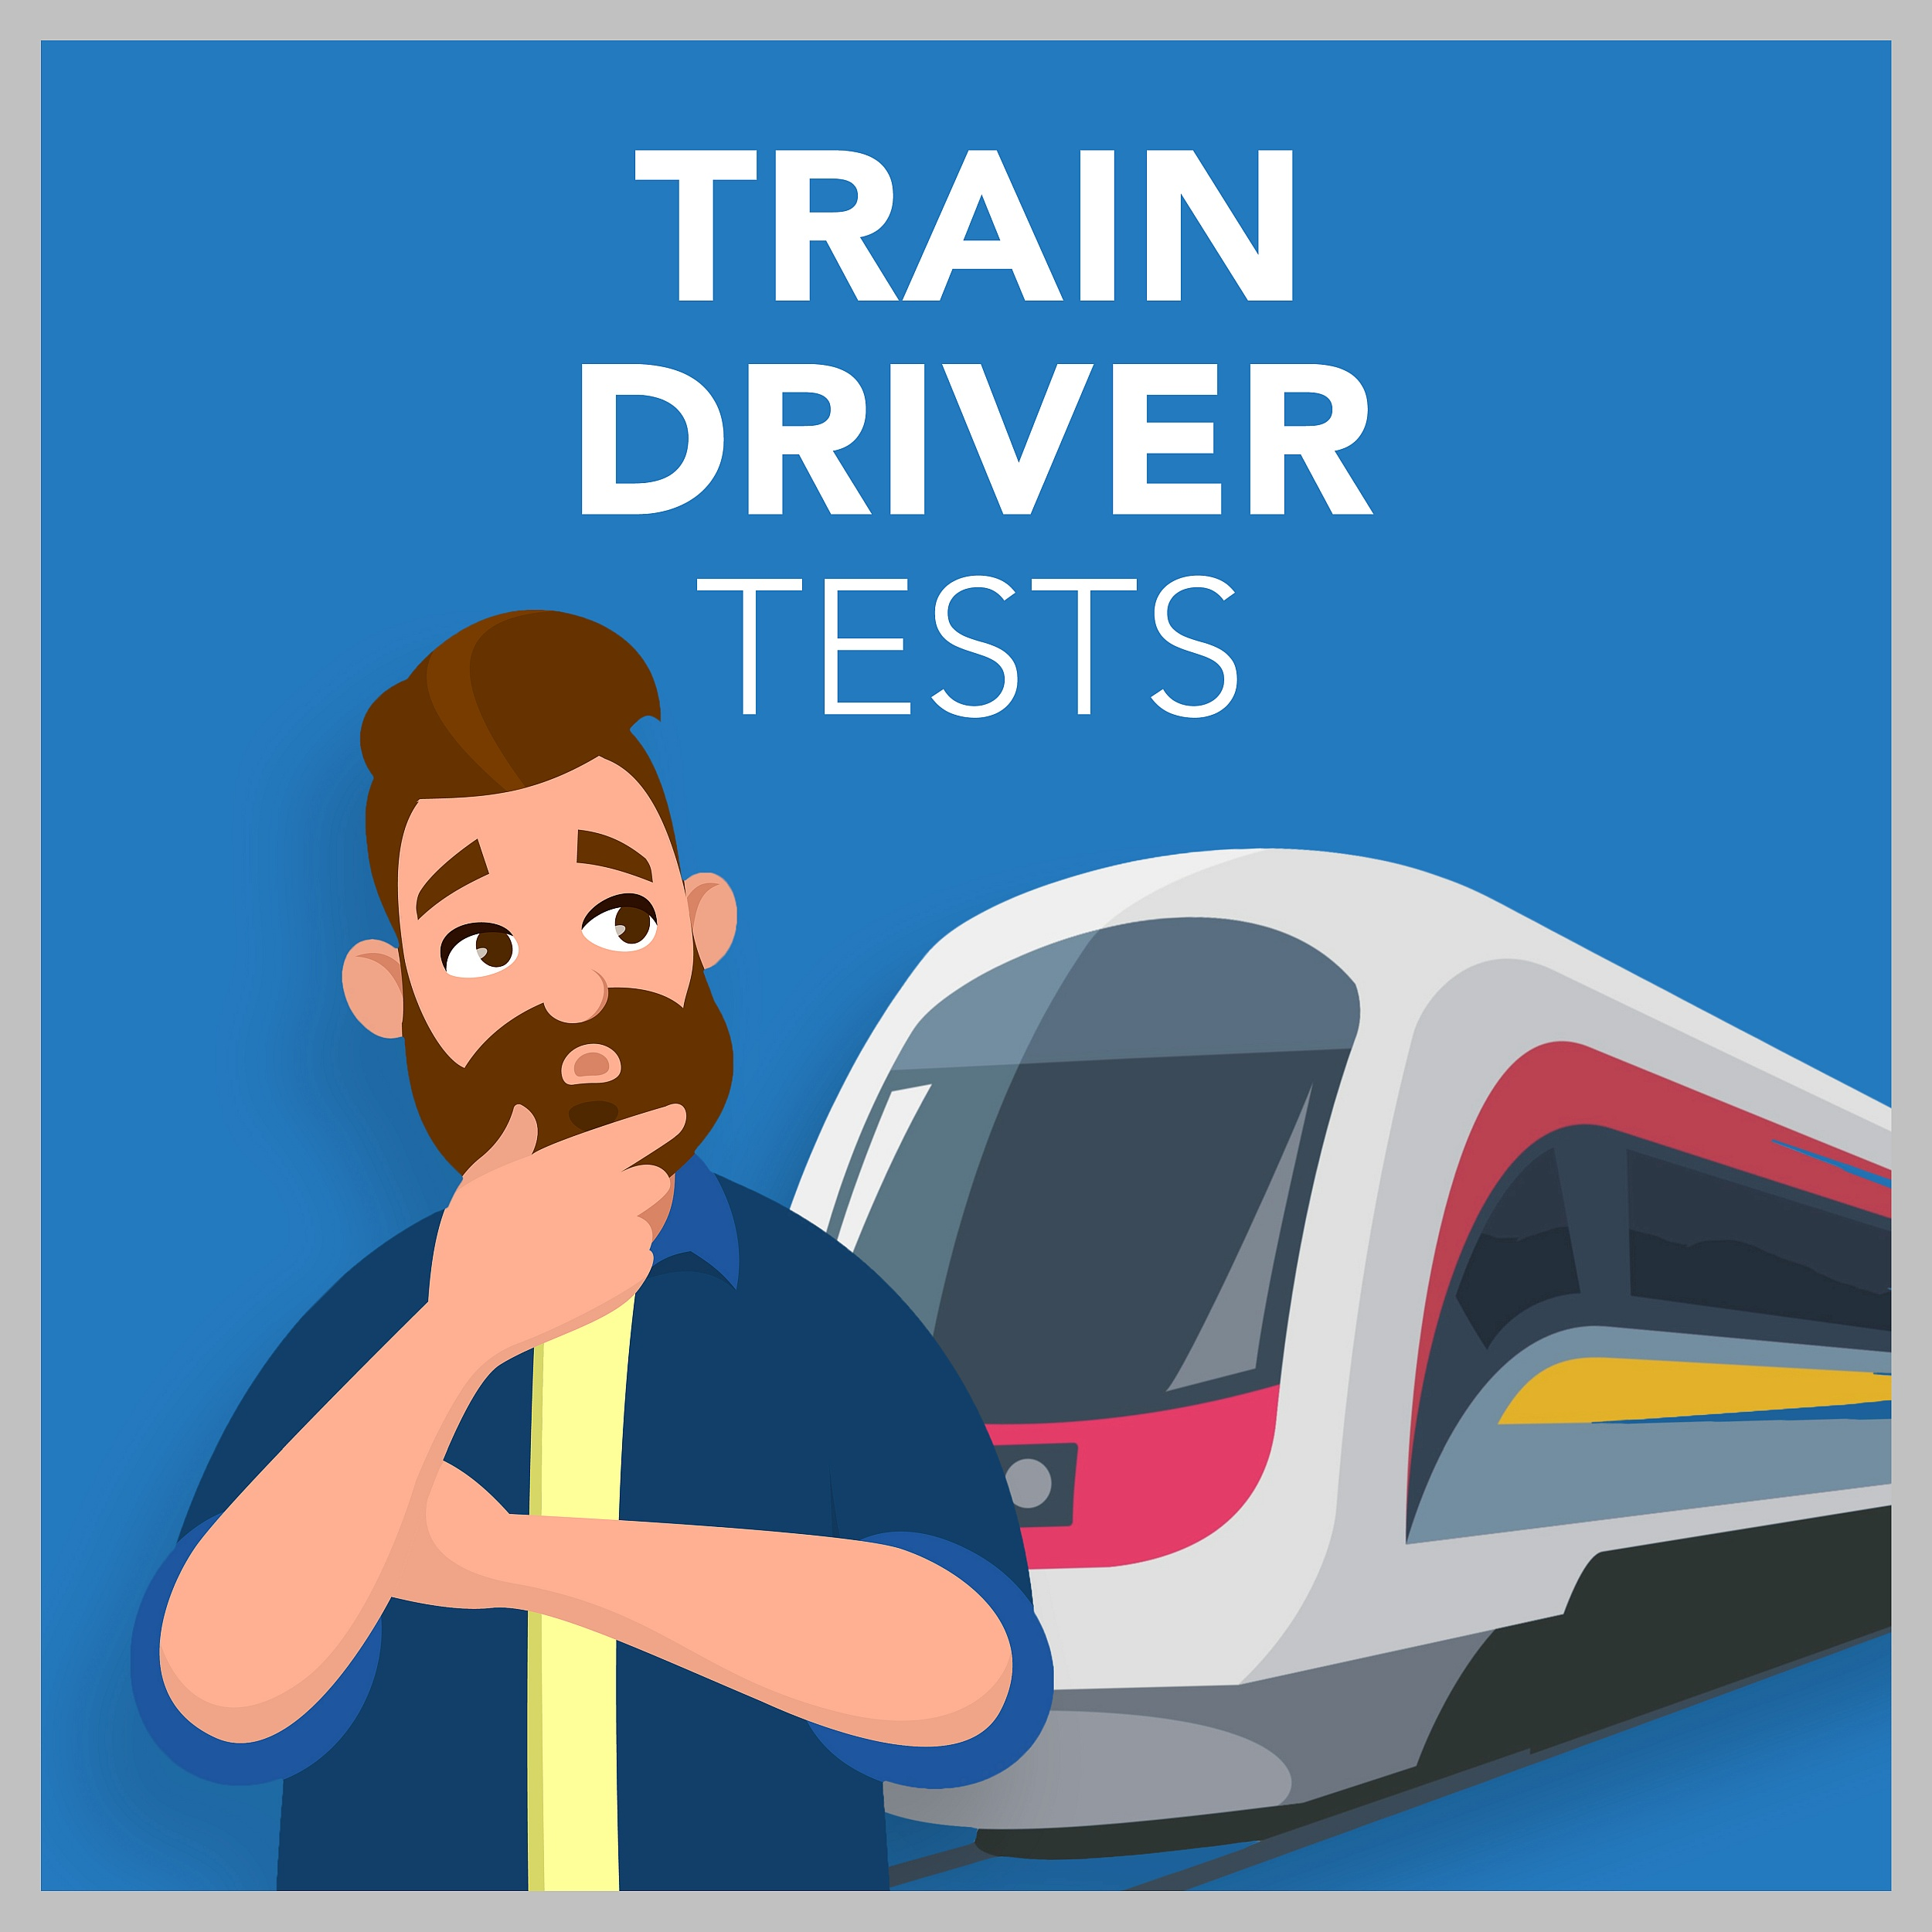 Train Driver Tests: A Guide With Example Questions + Answers